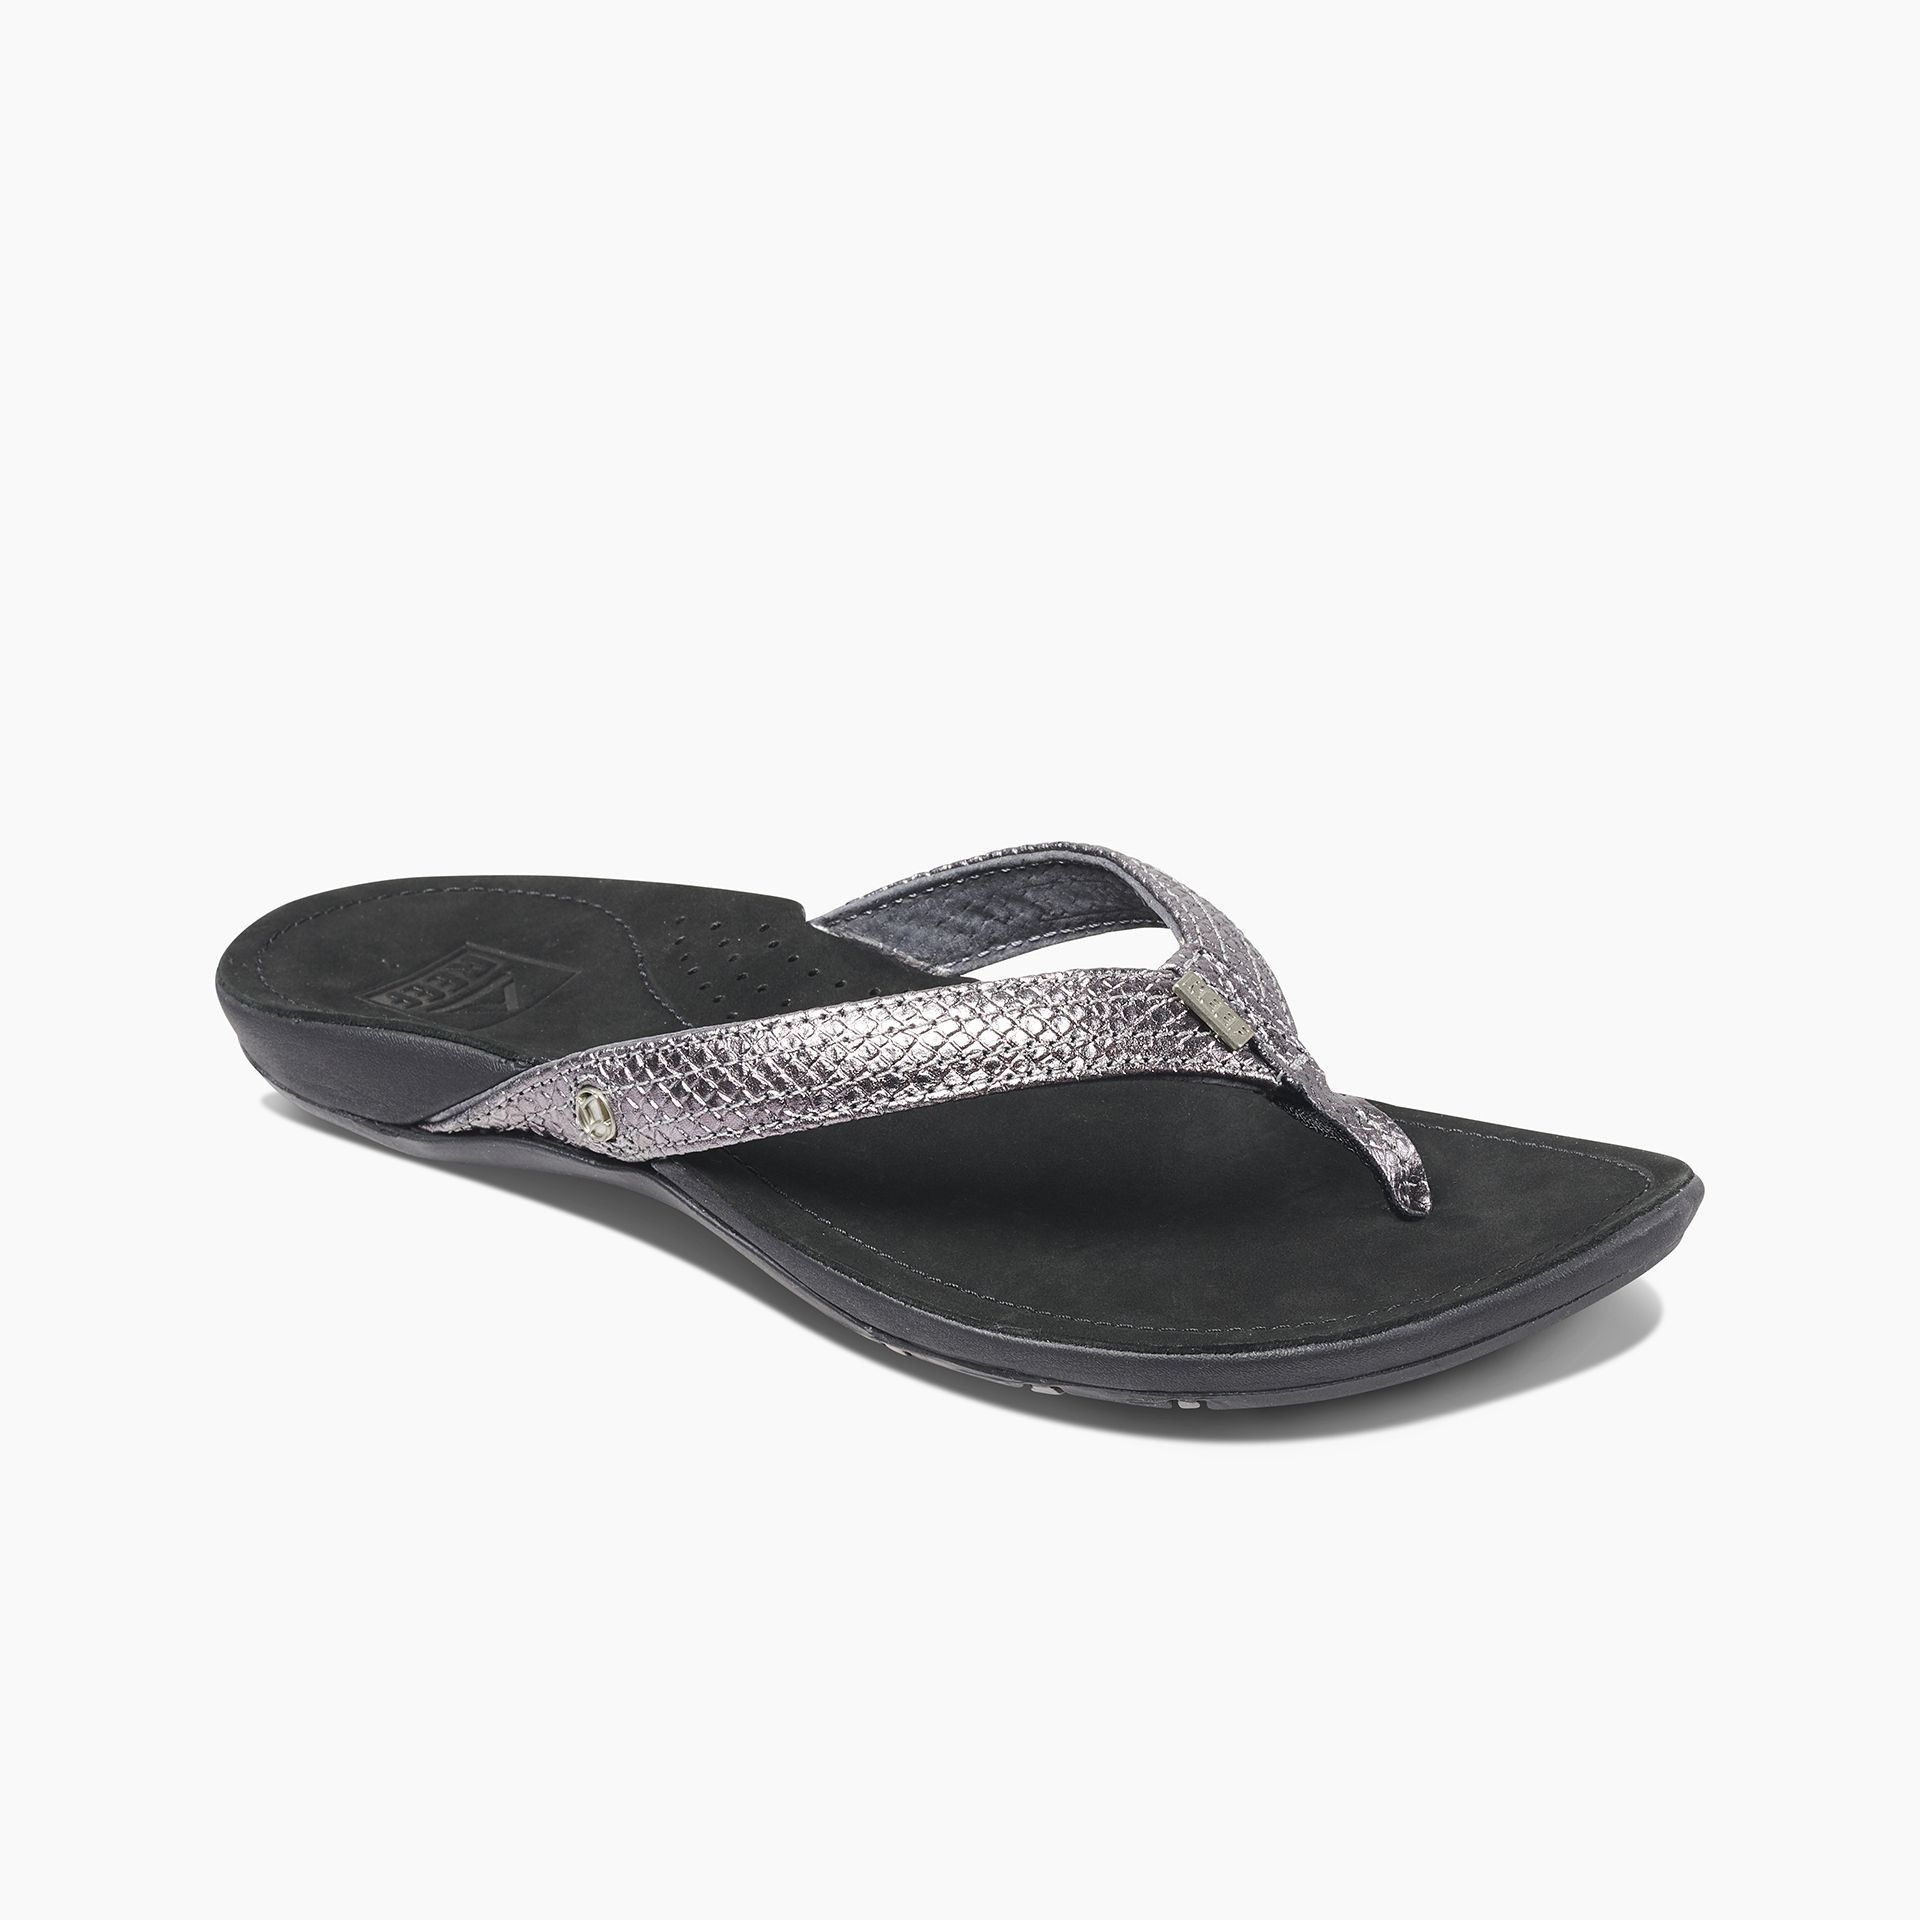 Reef dames slipper Miss J-Bay